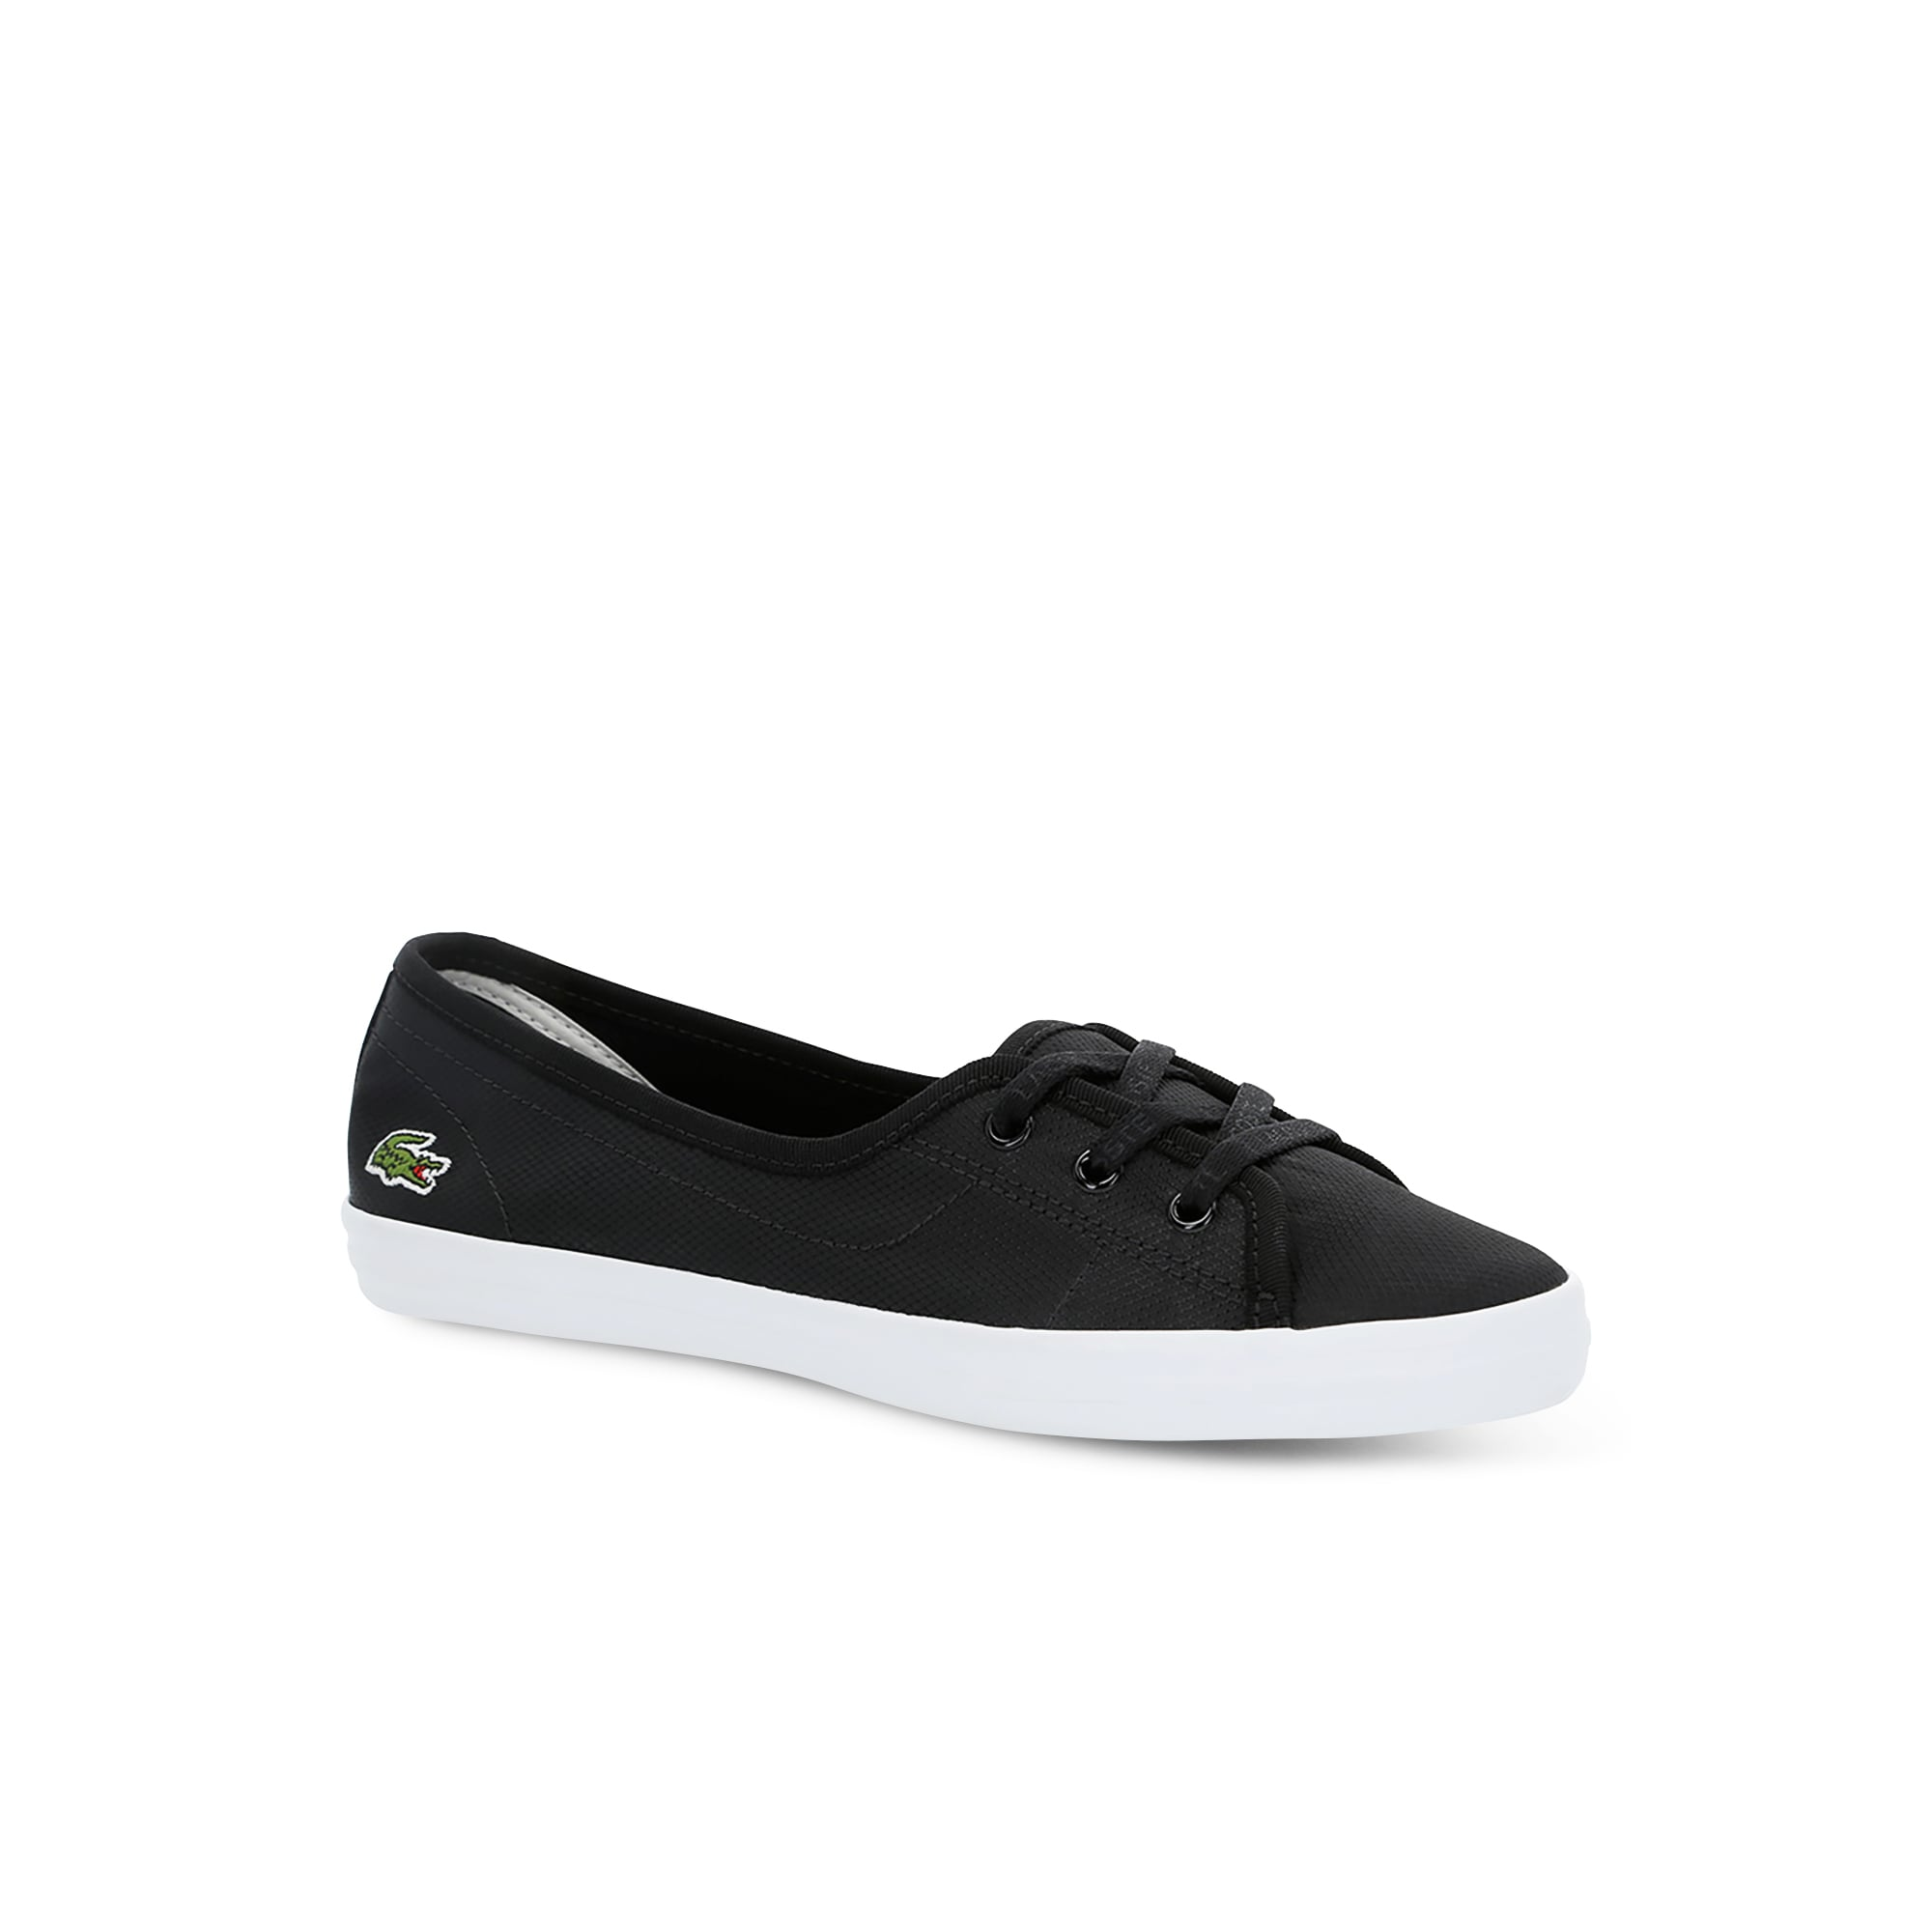 70ca1438cc Chaussures femme | Collection Femme | LACOSTE